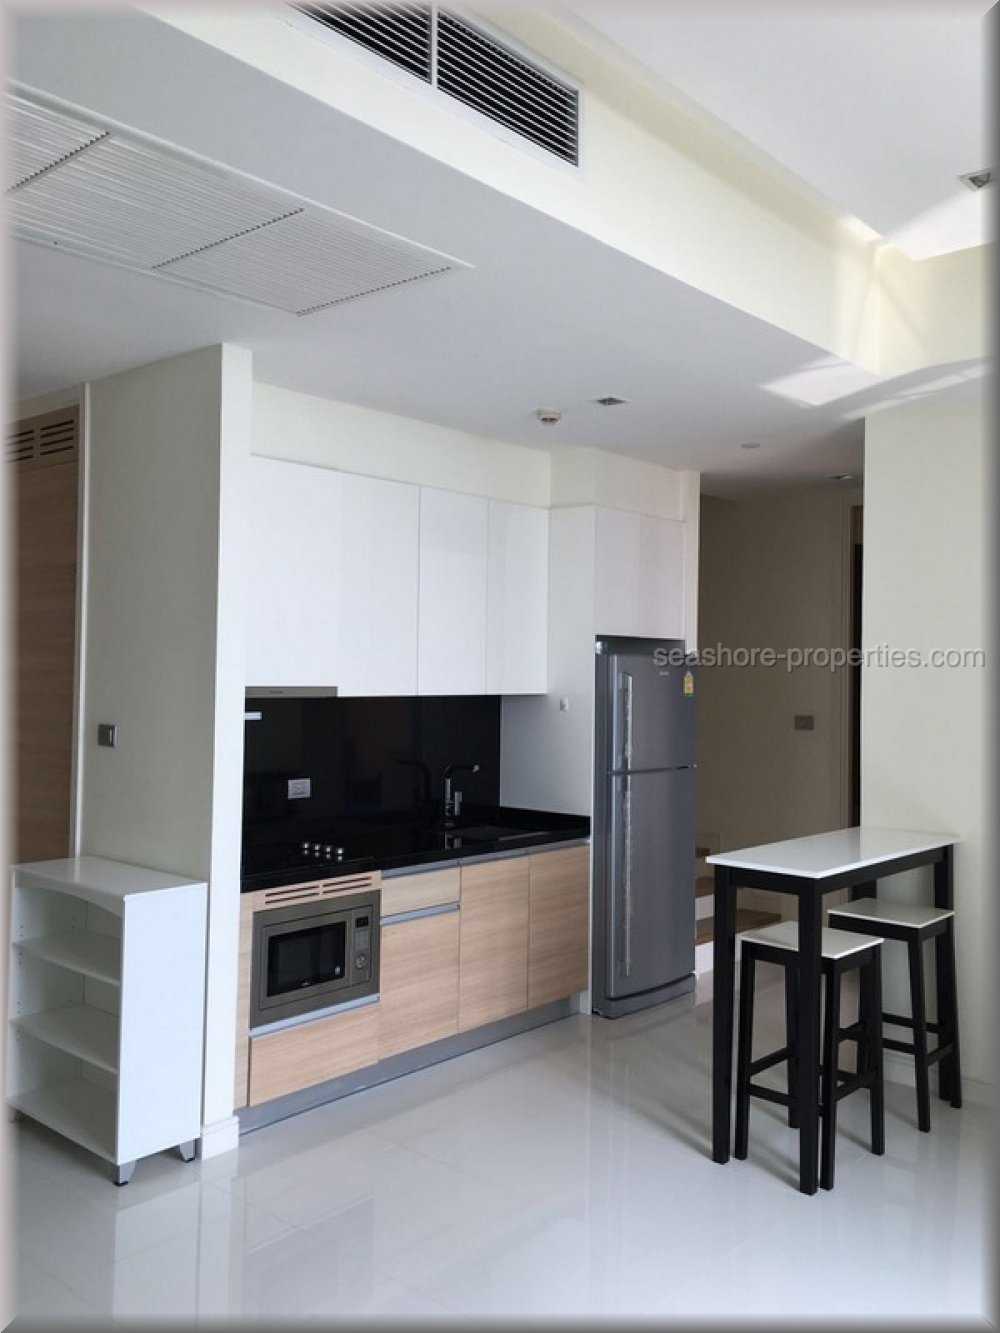 corner unit with front sea view  Condominiums to rent in Central Pattaya Pattaya